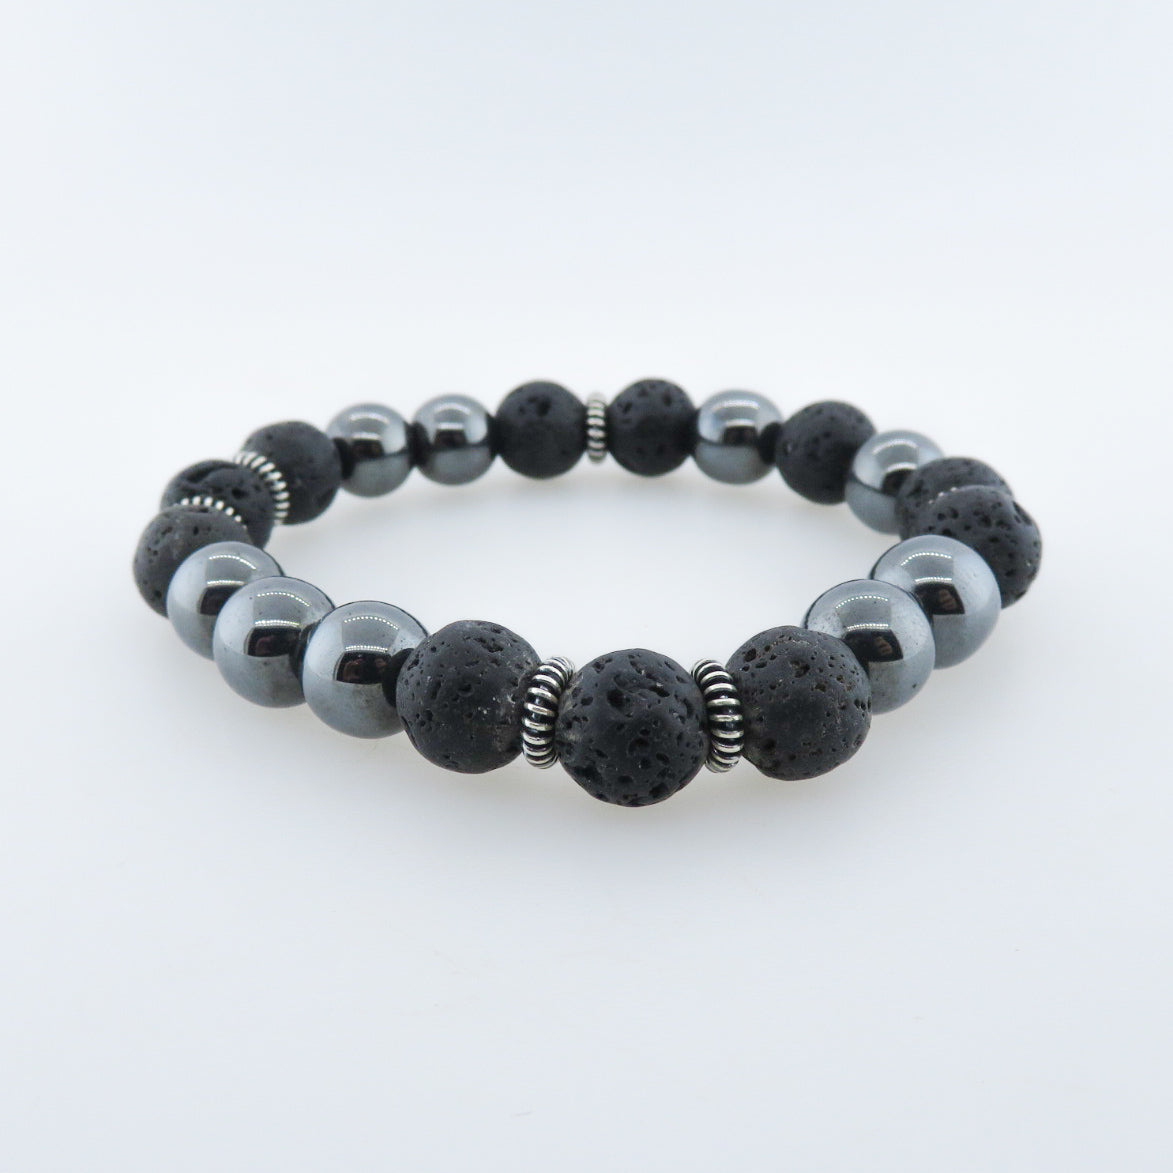 Terahertz Beads Bracelet with Lava and Silver Beads